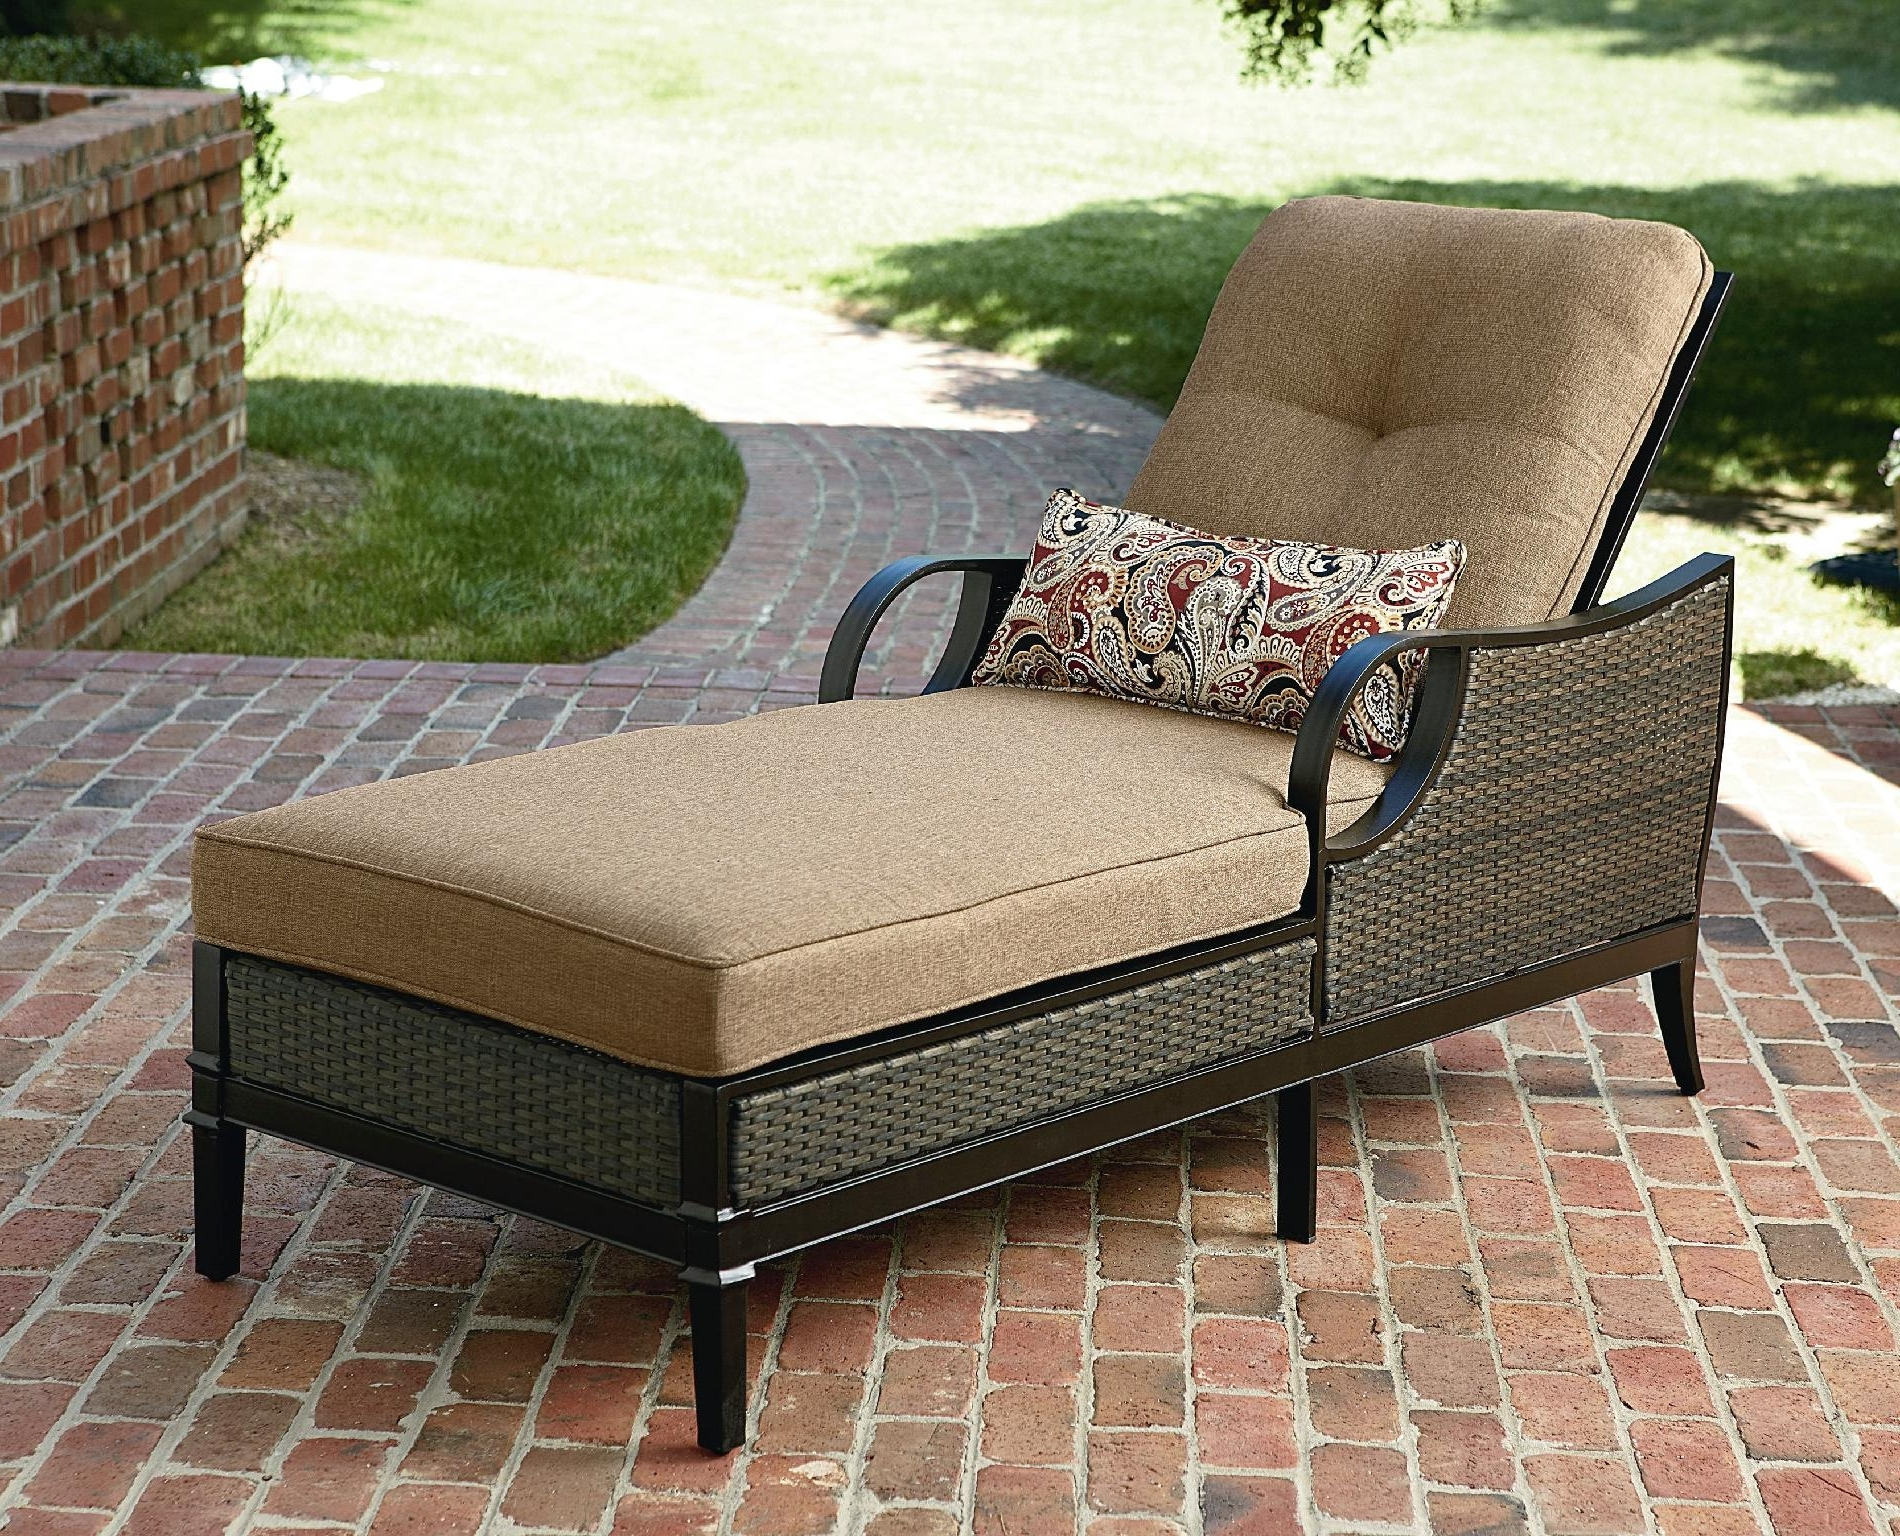 Deck Chaise Lounge Chairs Within Most Current Chaise Lounge Chairs For Patio • Lounge Chairs Ideas (View 5 of 15)